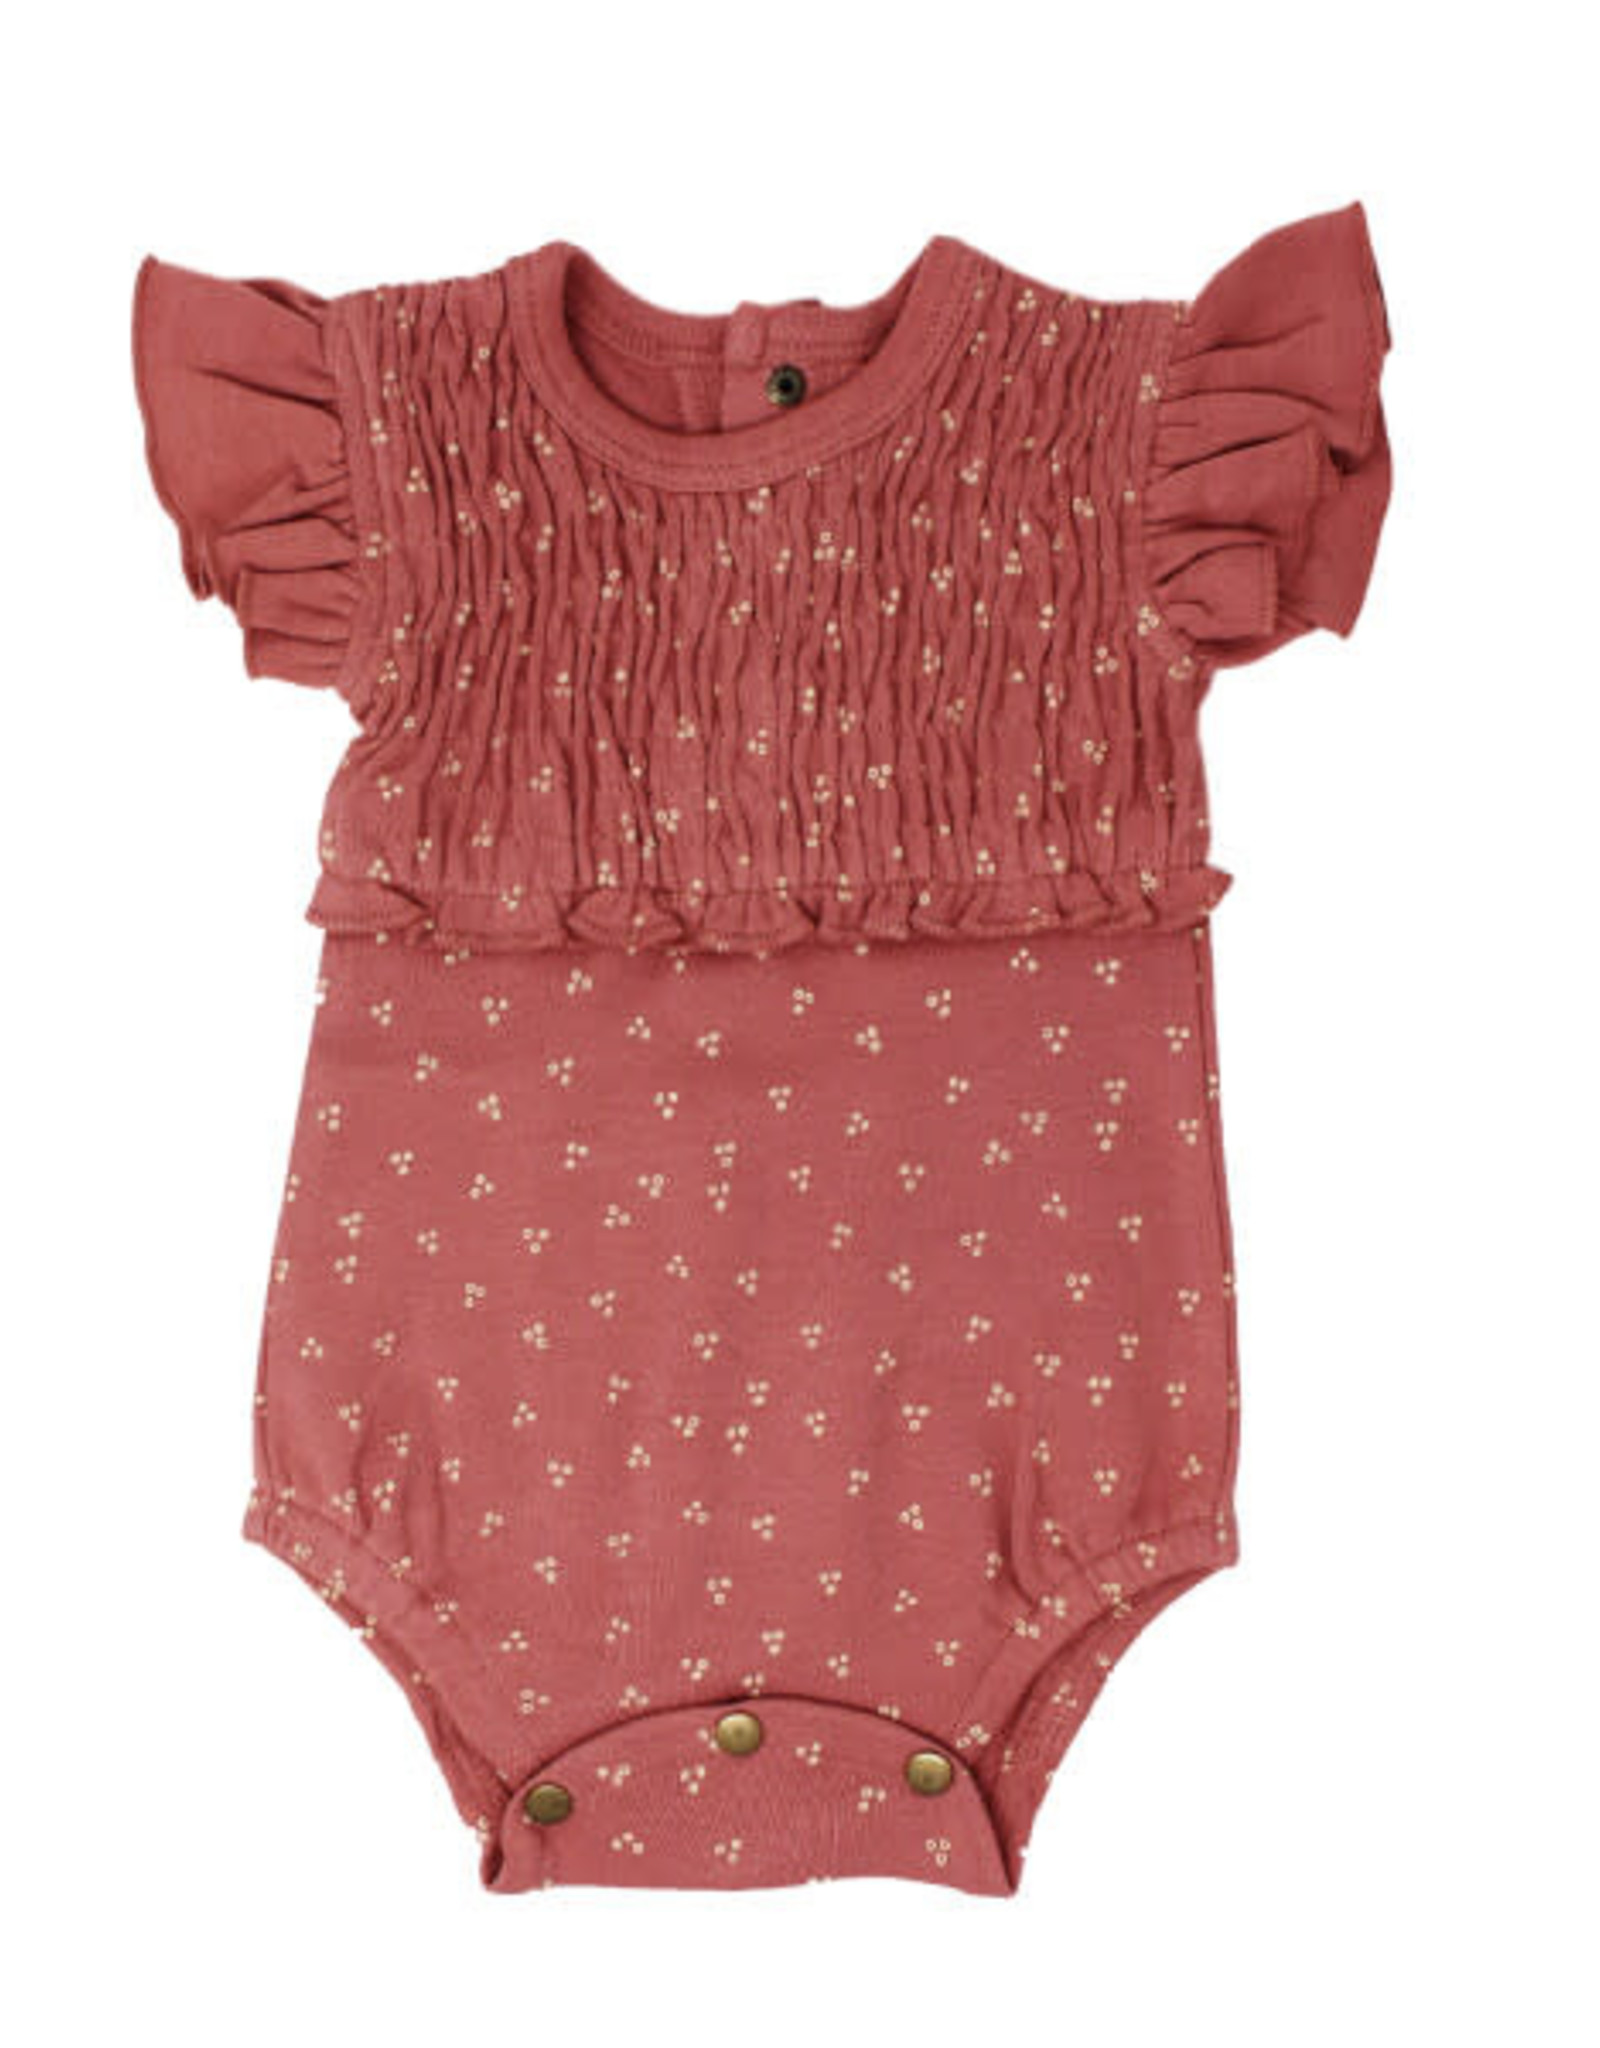 L'oved Baby Smocked Short Sleeve Body Suit Sienna Dots